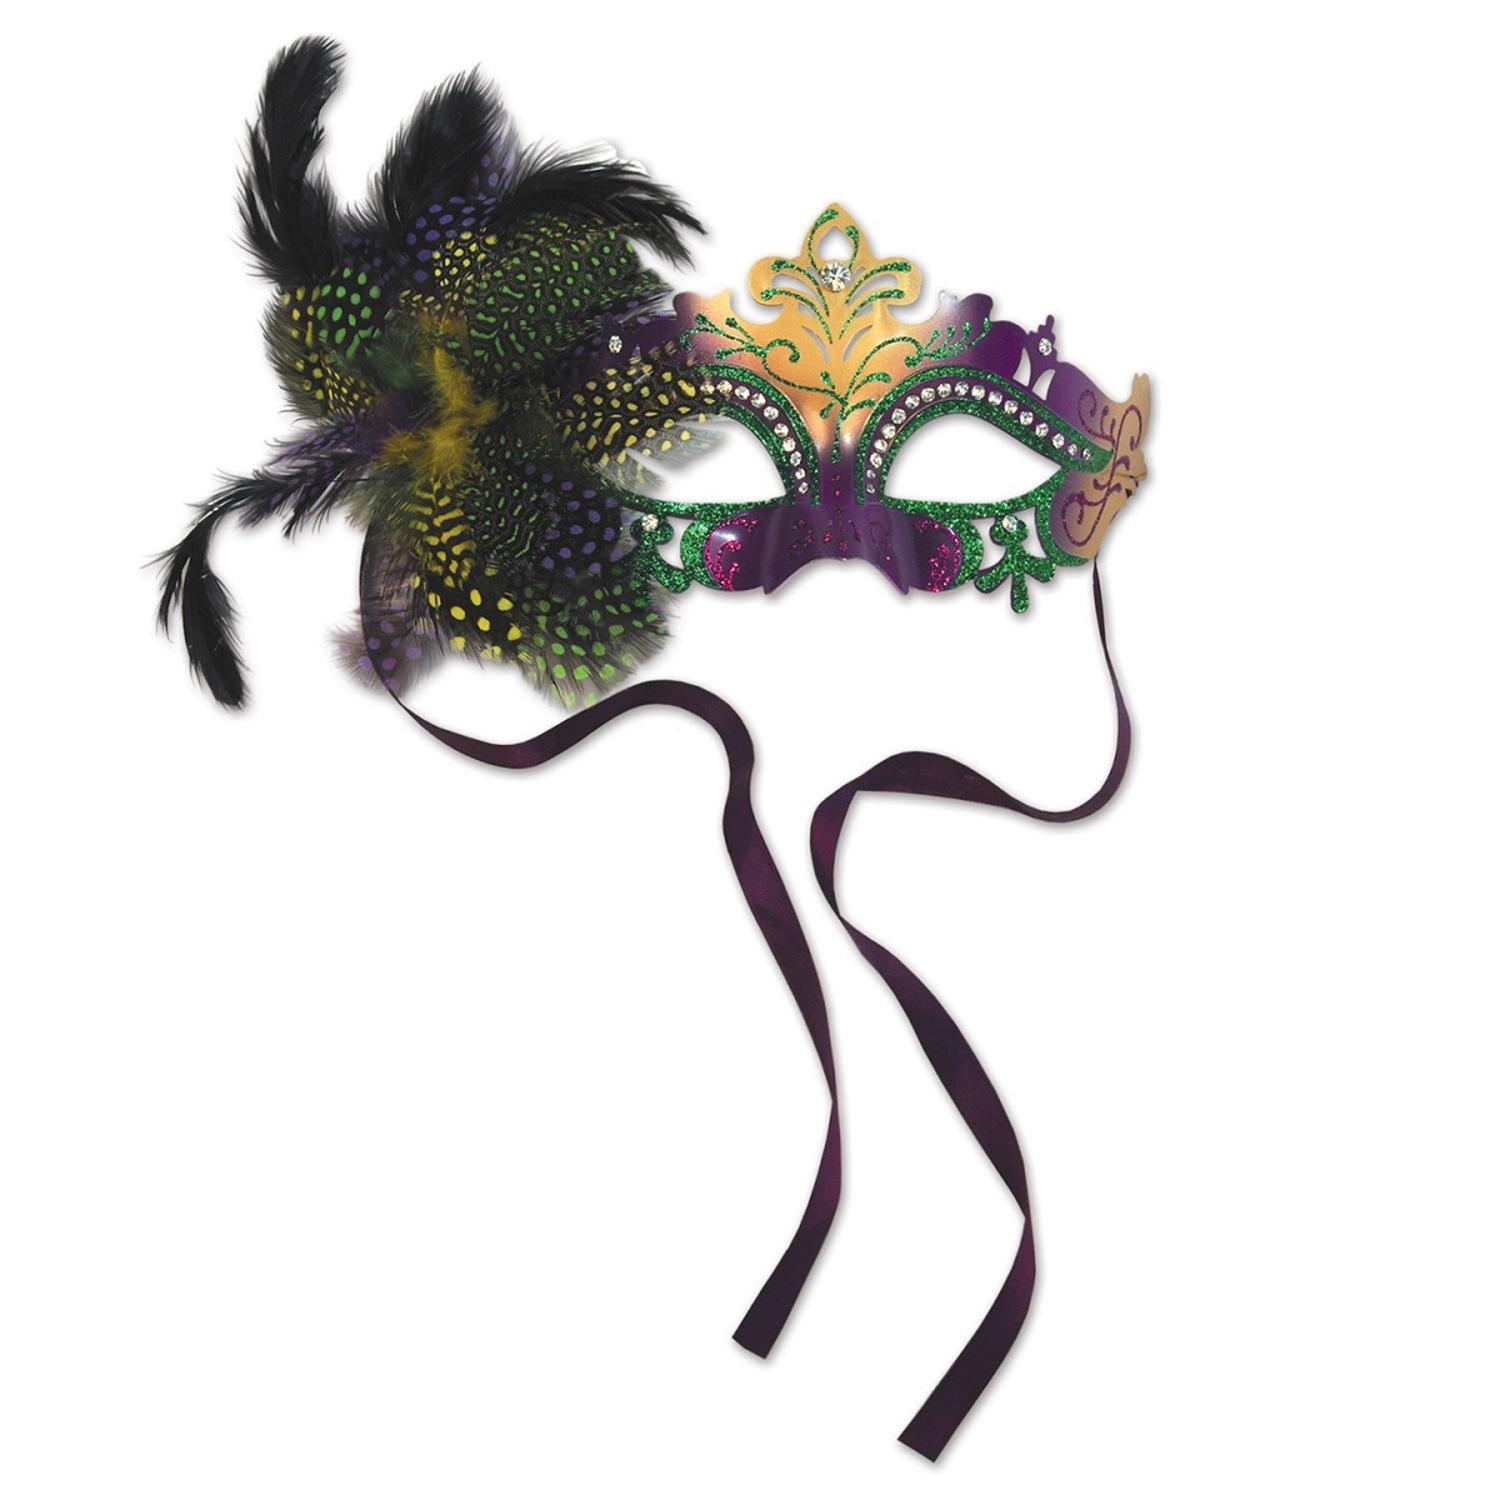 Pack of 6 Elegantly Glittered Green, Gold and Purple Metal Filigree Mardi Gras Masquerade Masks